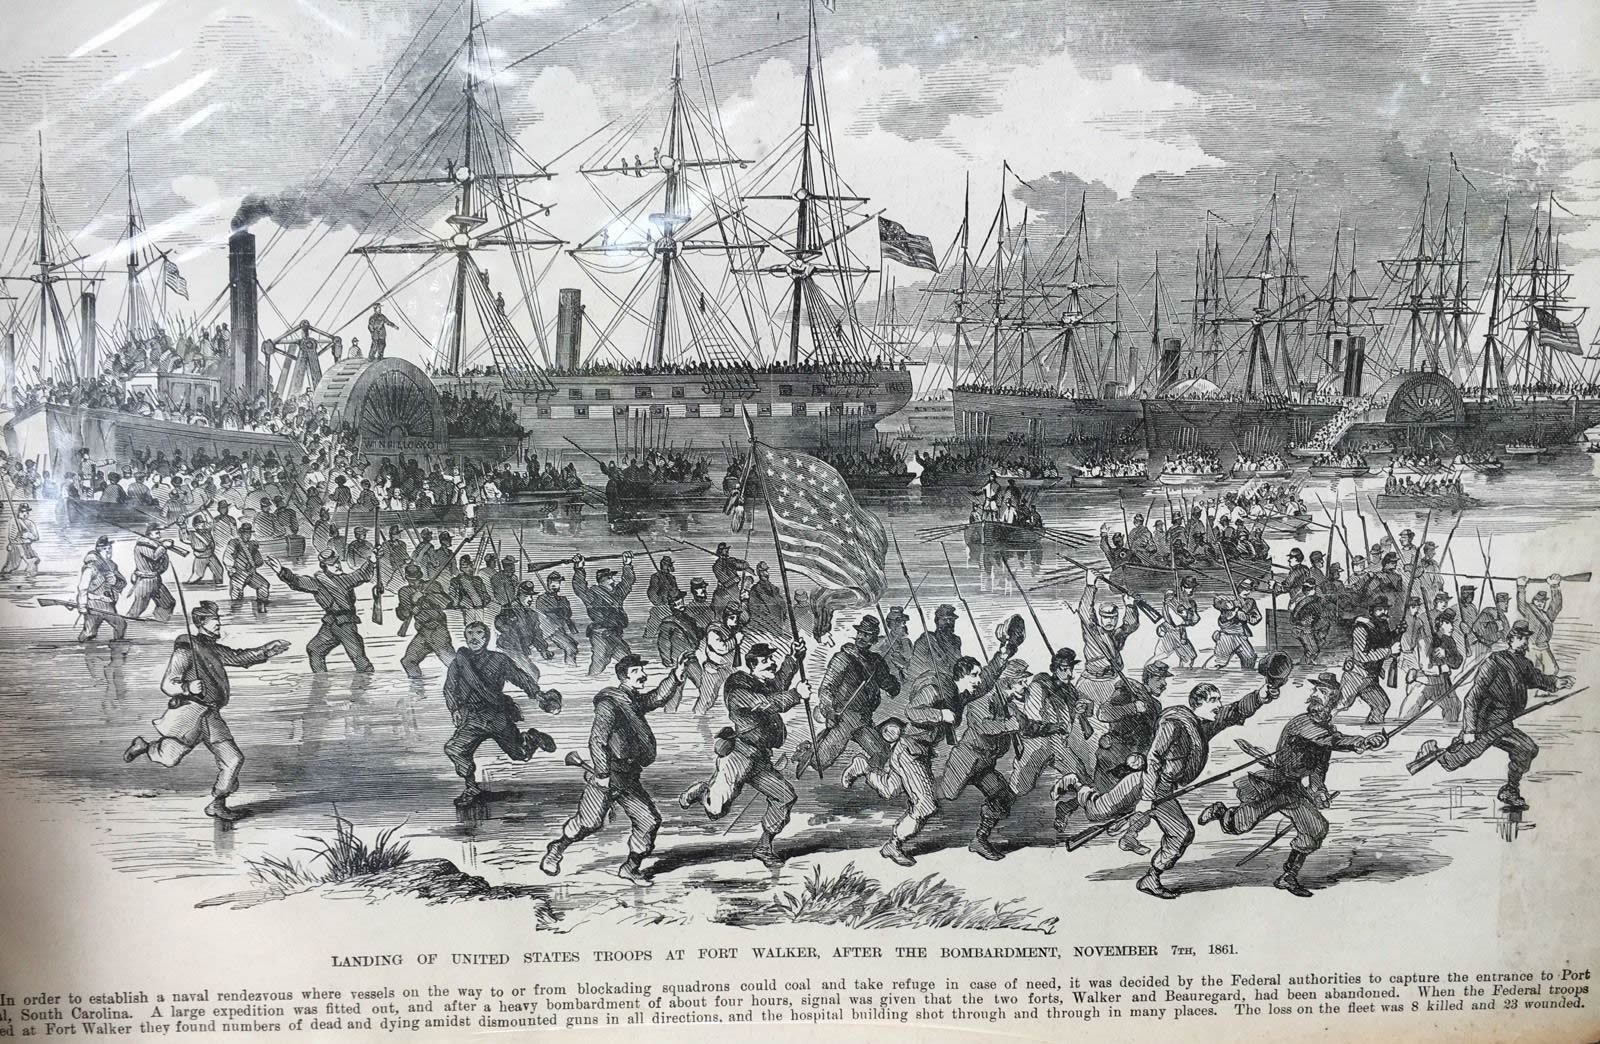 Landing of United States troops at Fort Walker, after the bombardment, November 7th, 1861